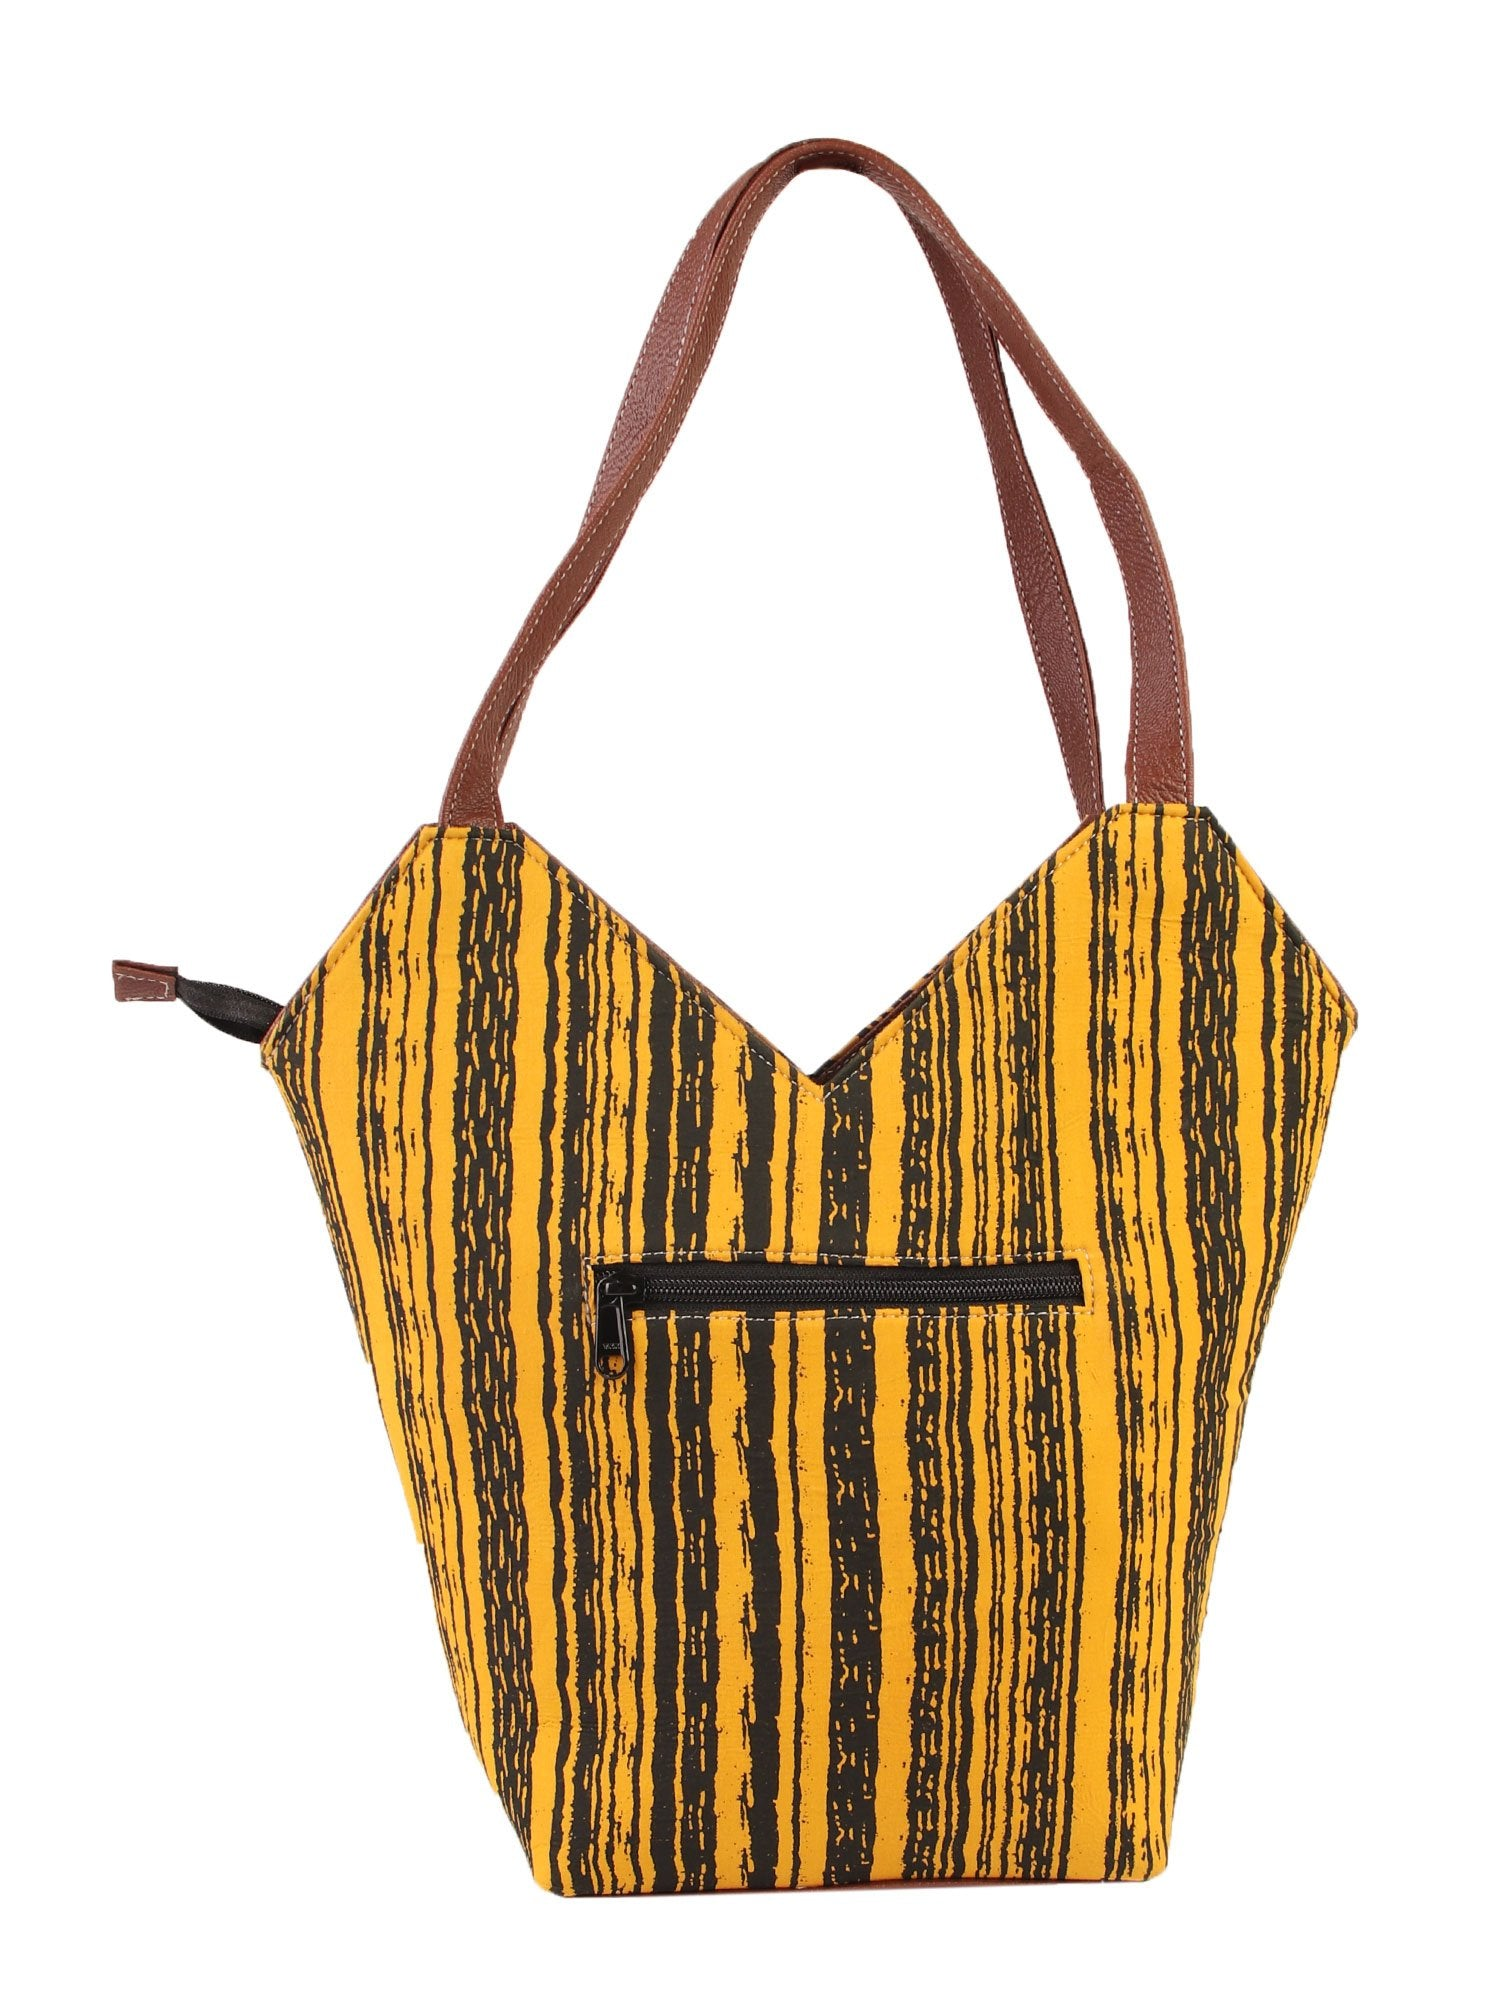 Embroidery Hobo Bag